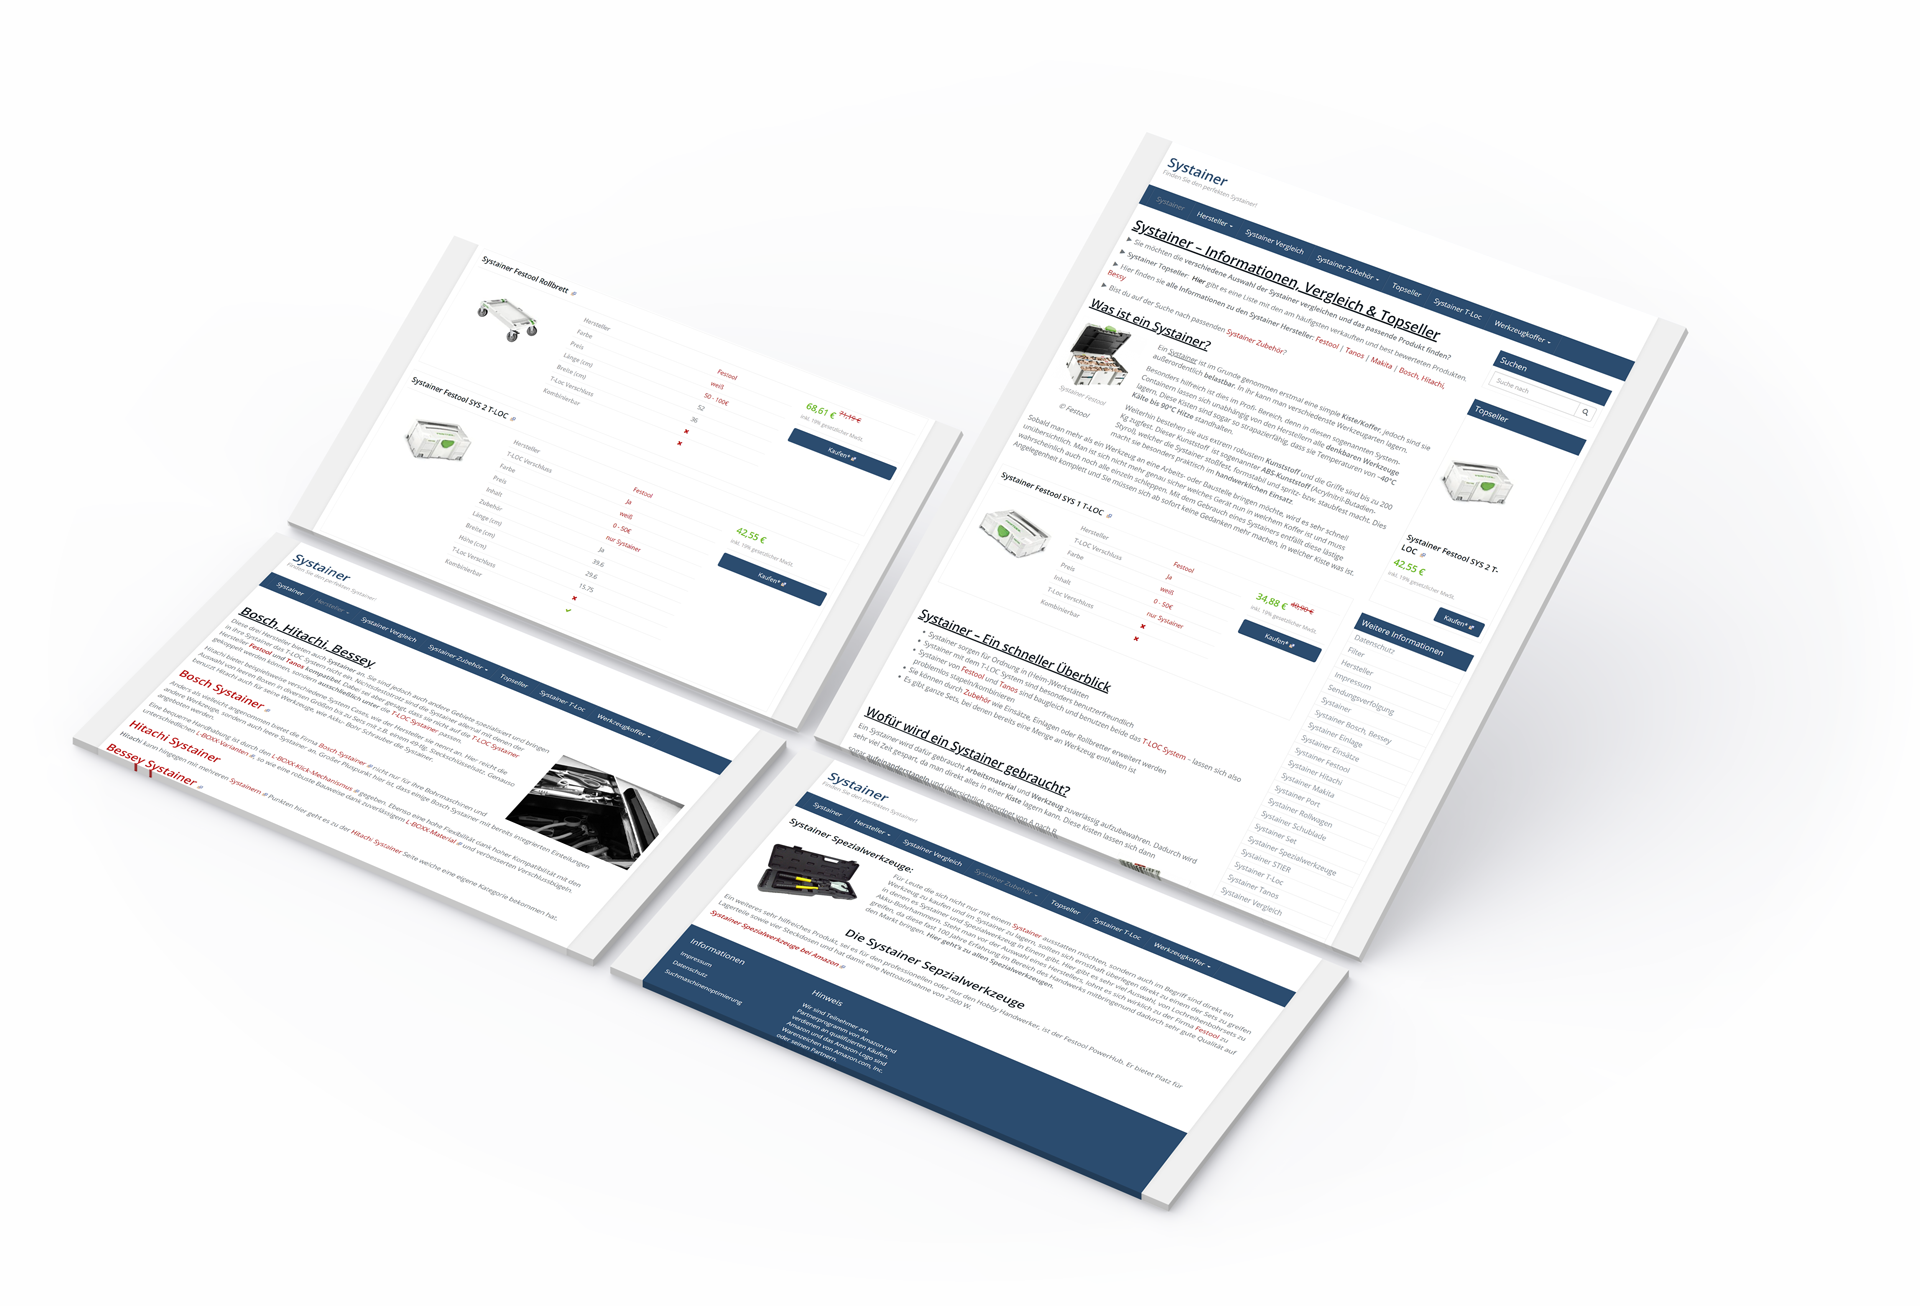 Systainer_CaseStudy_Mockup